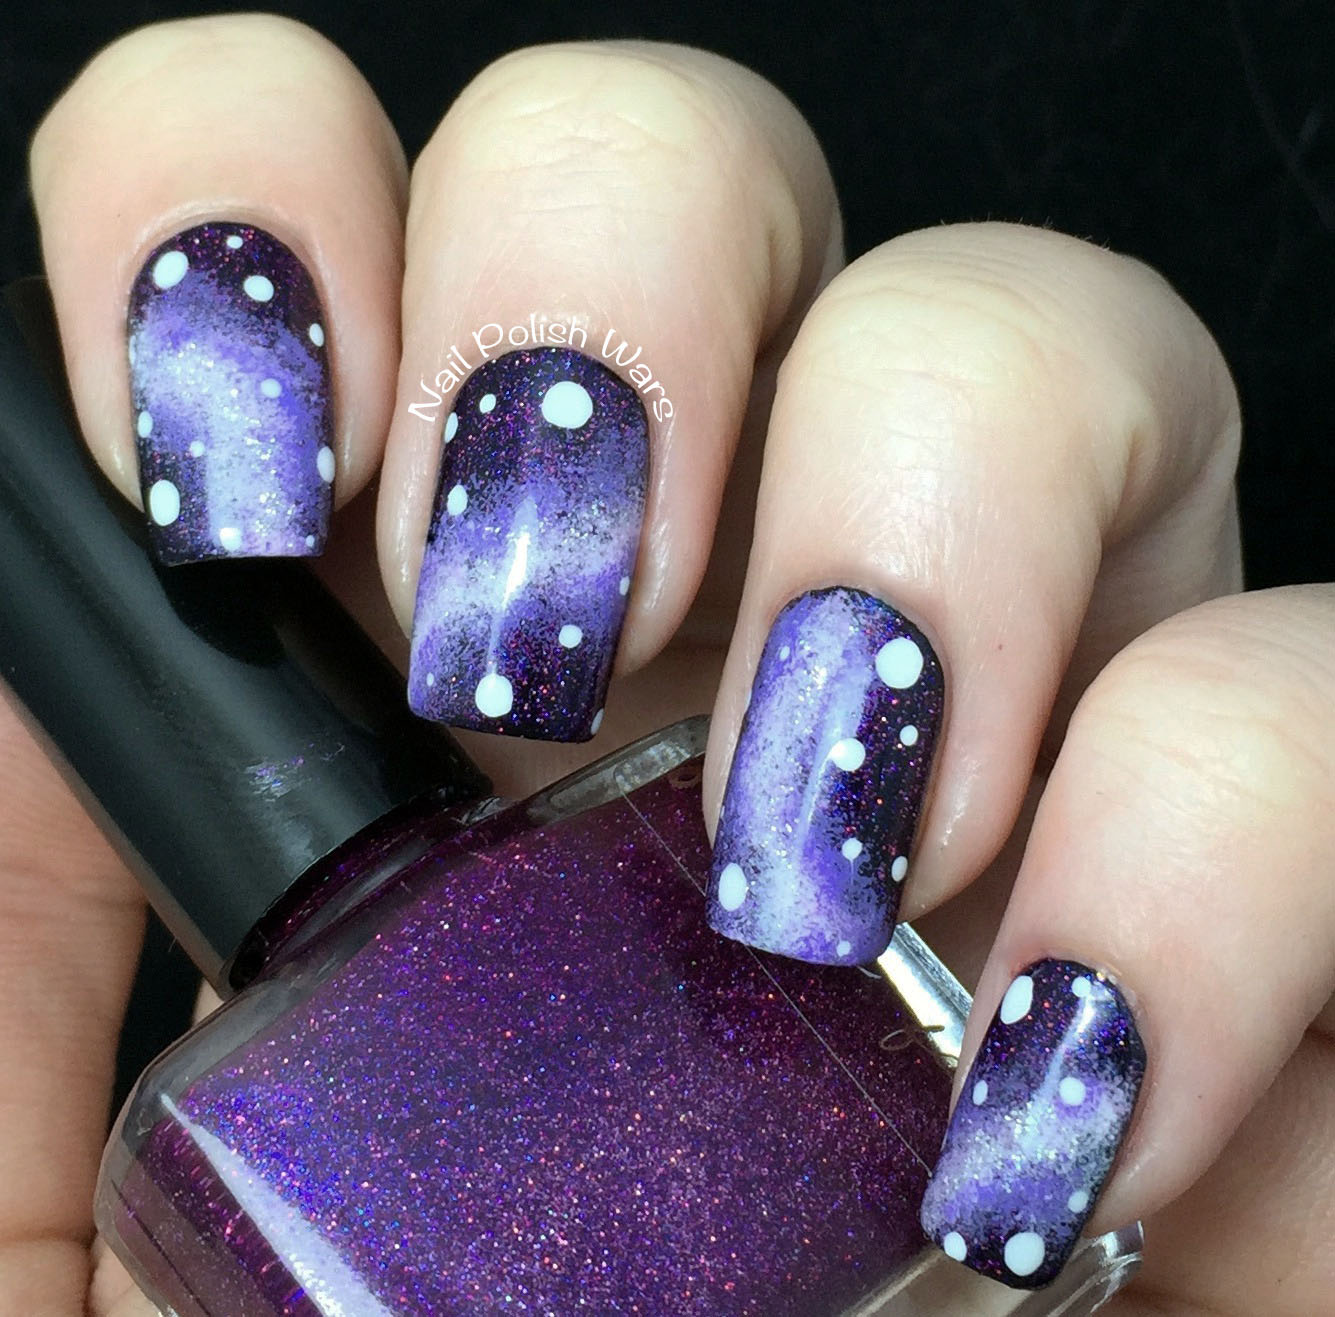 Nail Polish Wars: Galactic